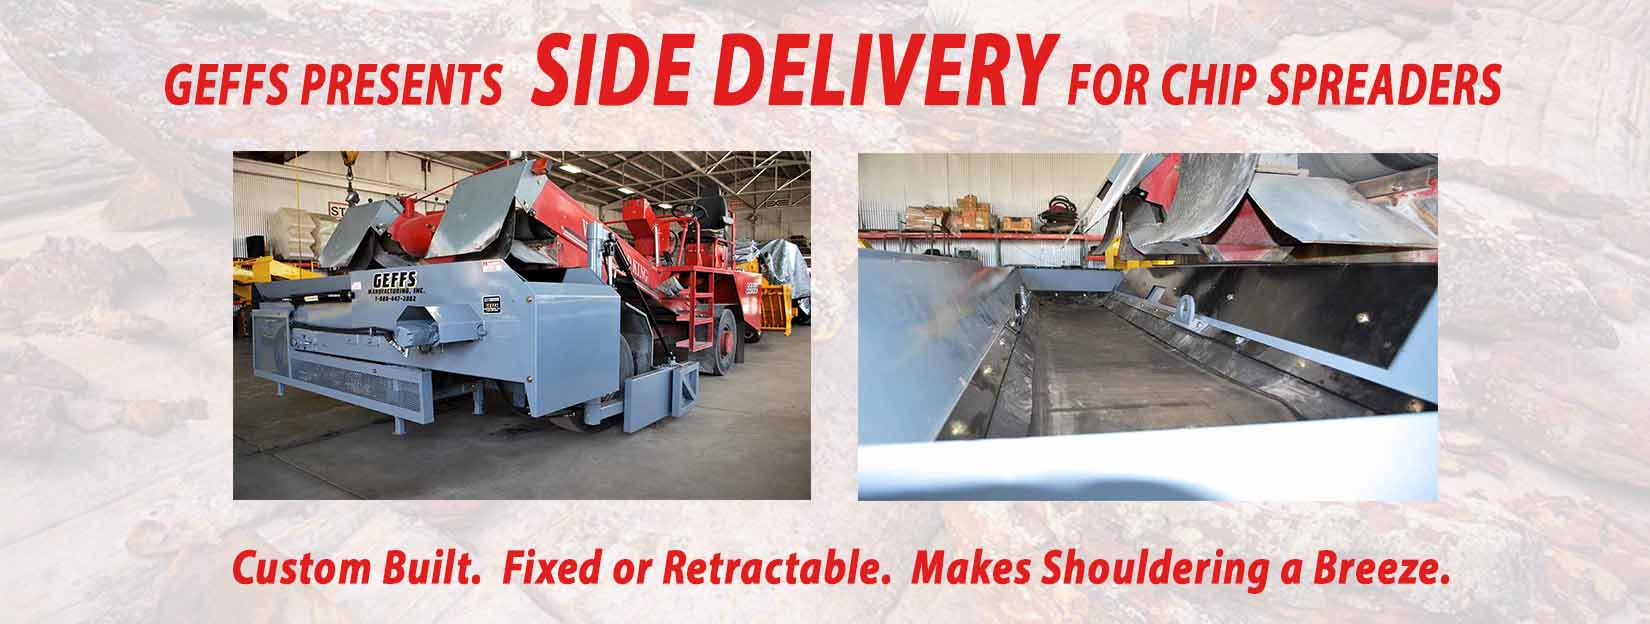 image of GEFFS Chip Spreader Side Delivery Slider